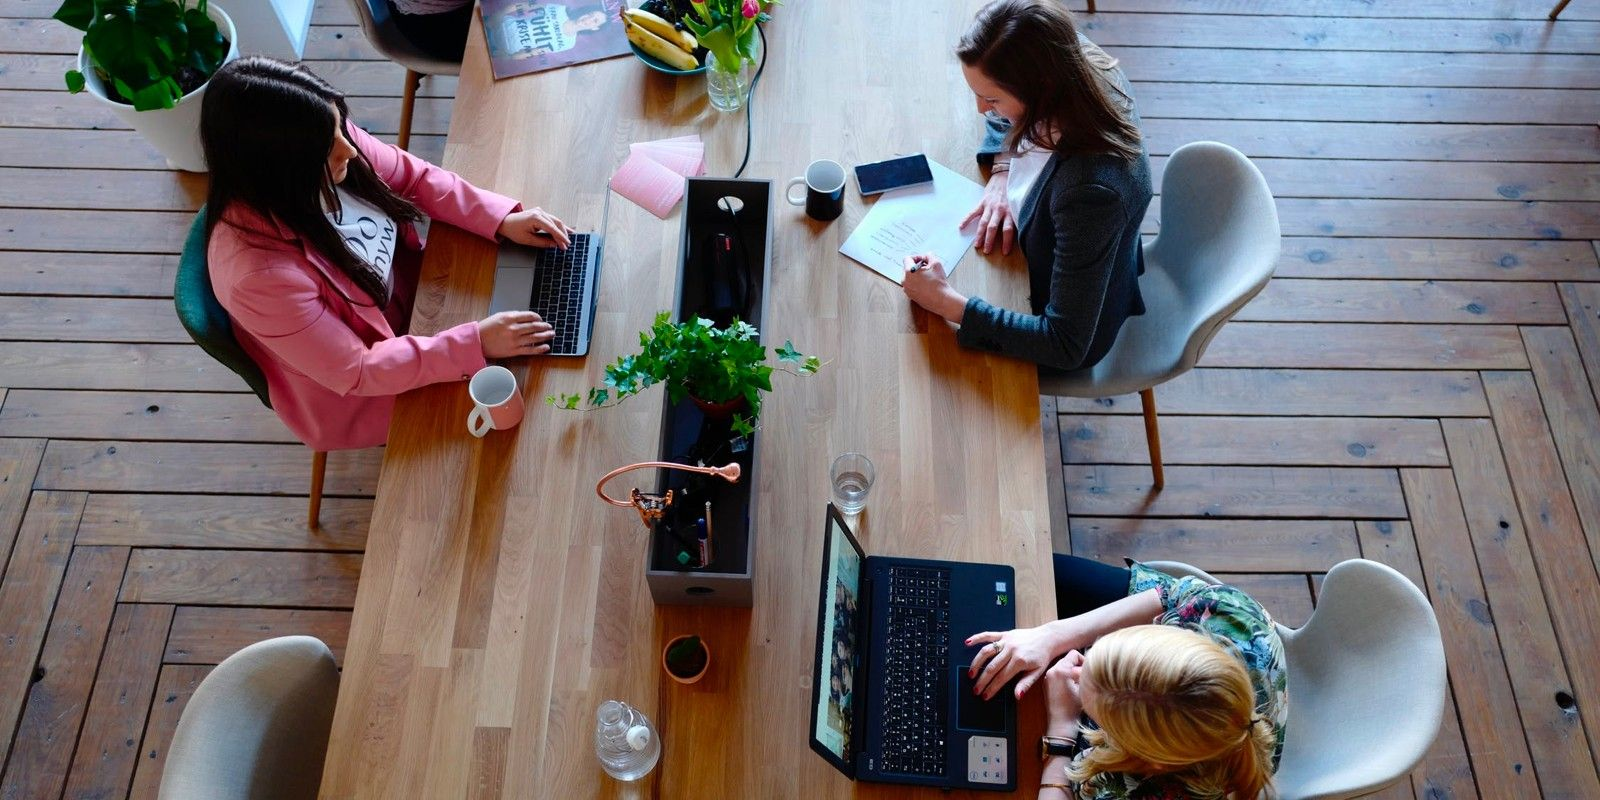 Coworking space members working at a table